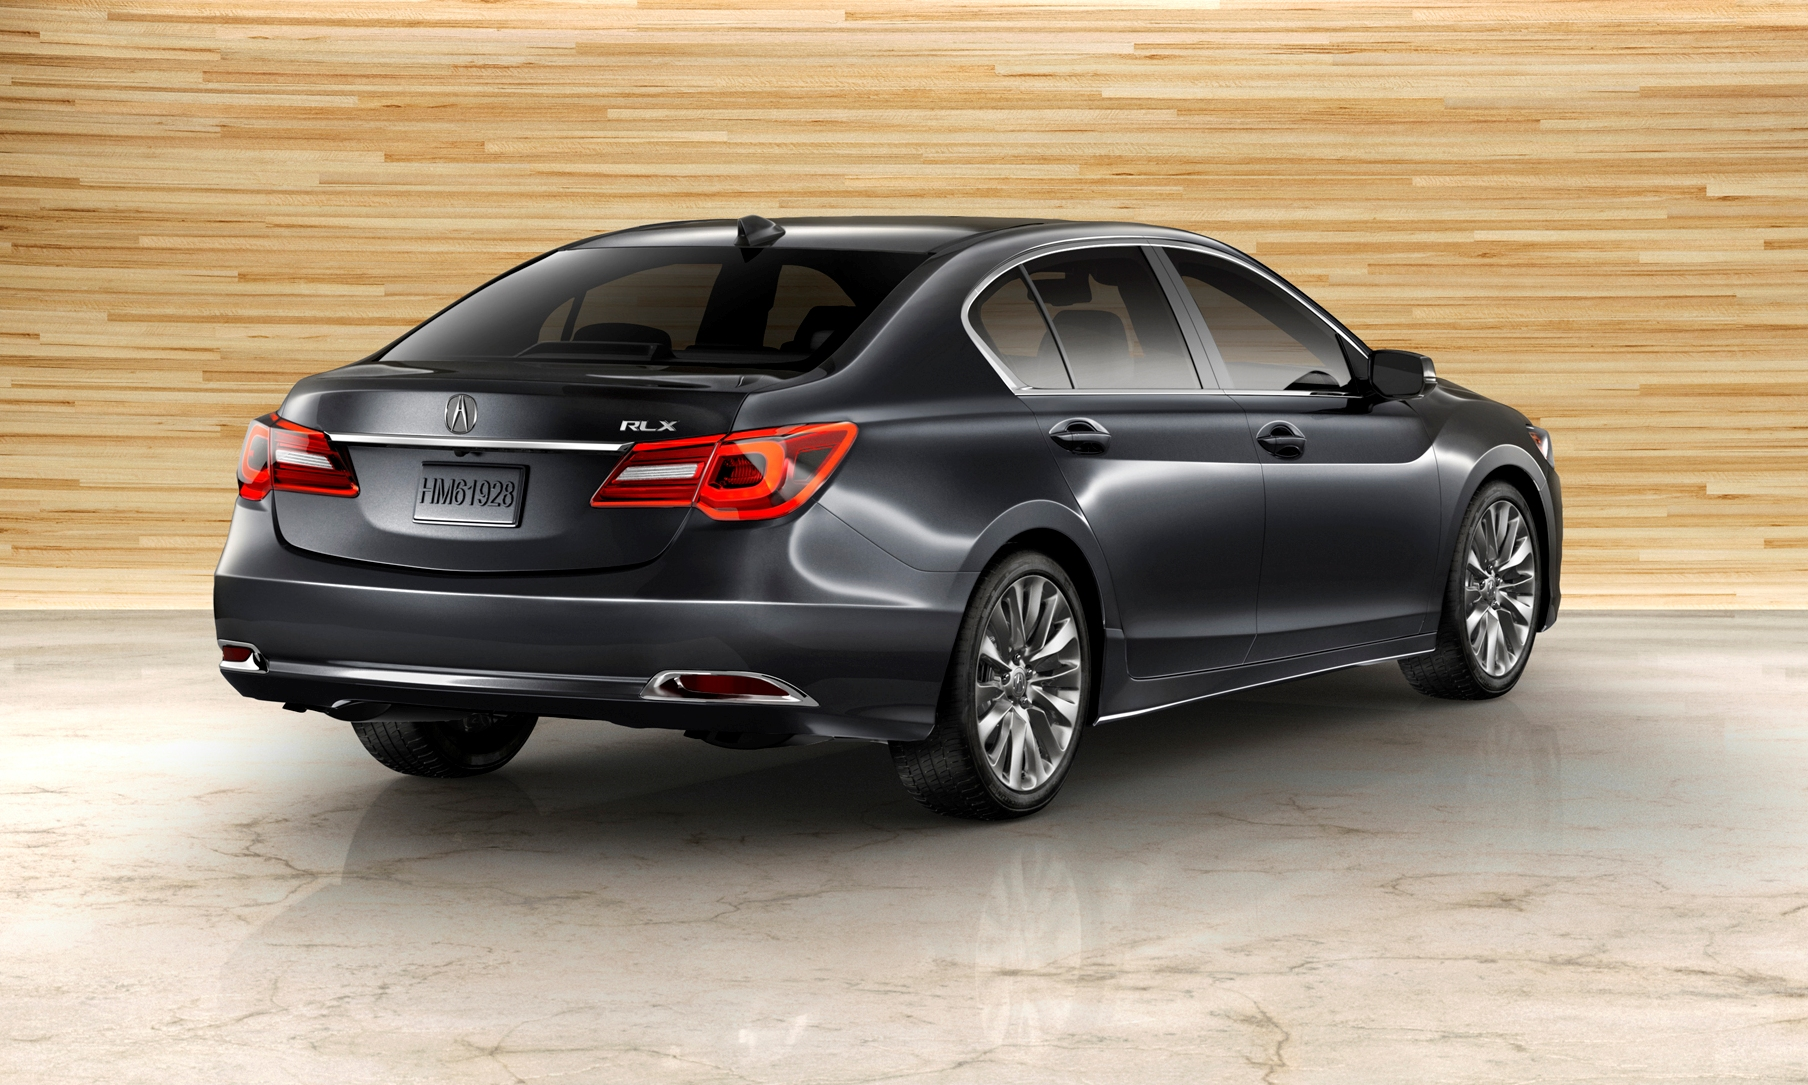 new for expert buy review drive rlx sale car acura test